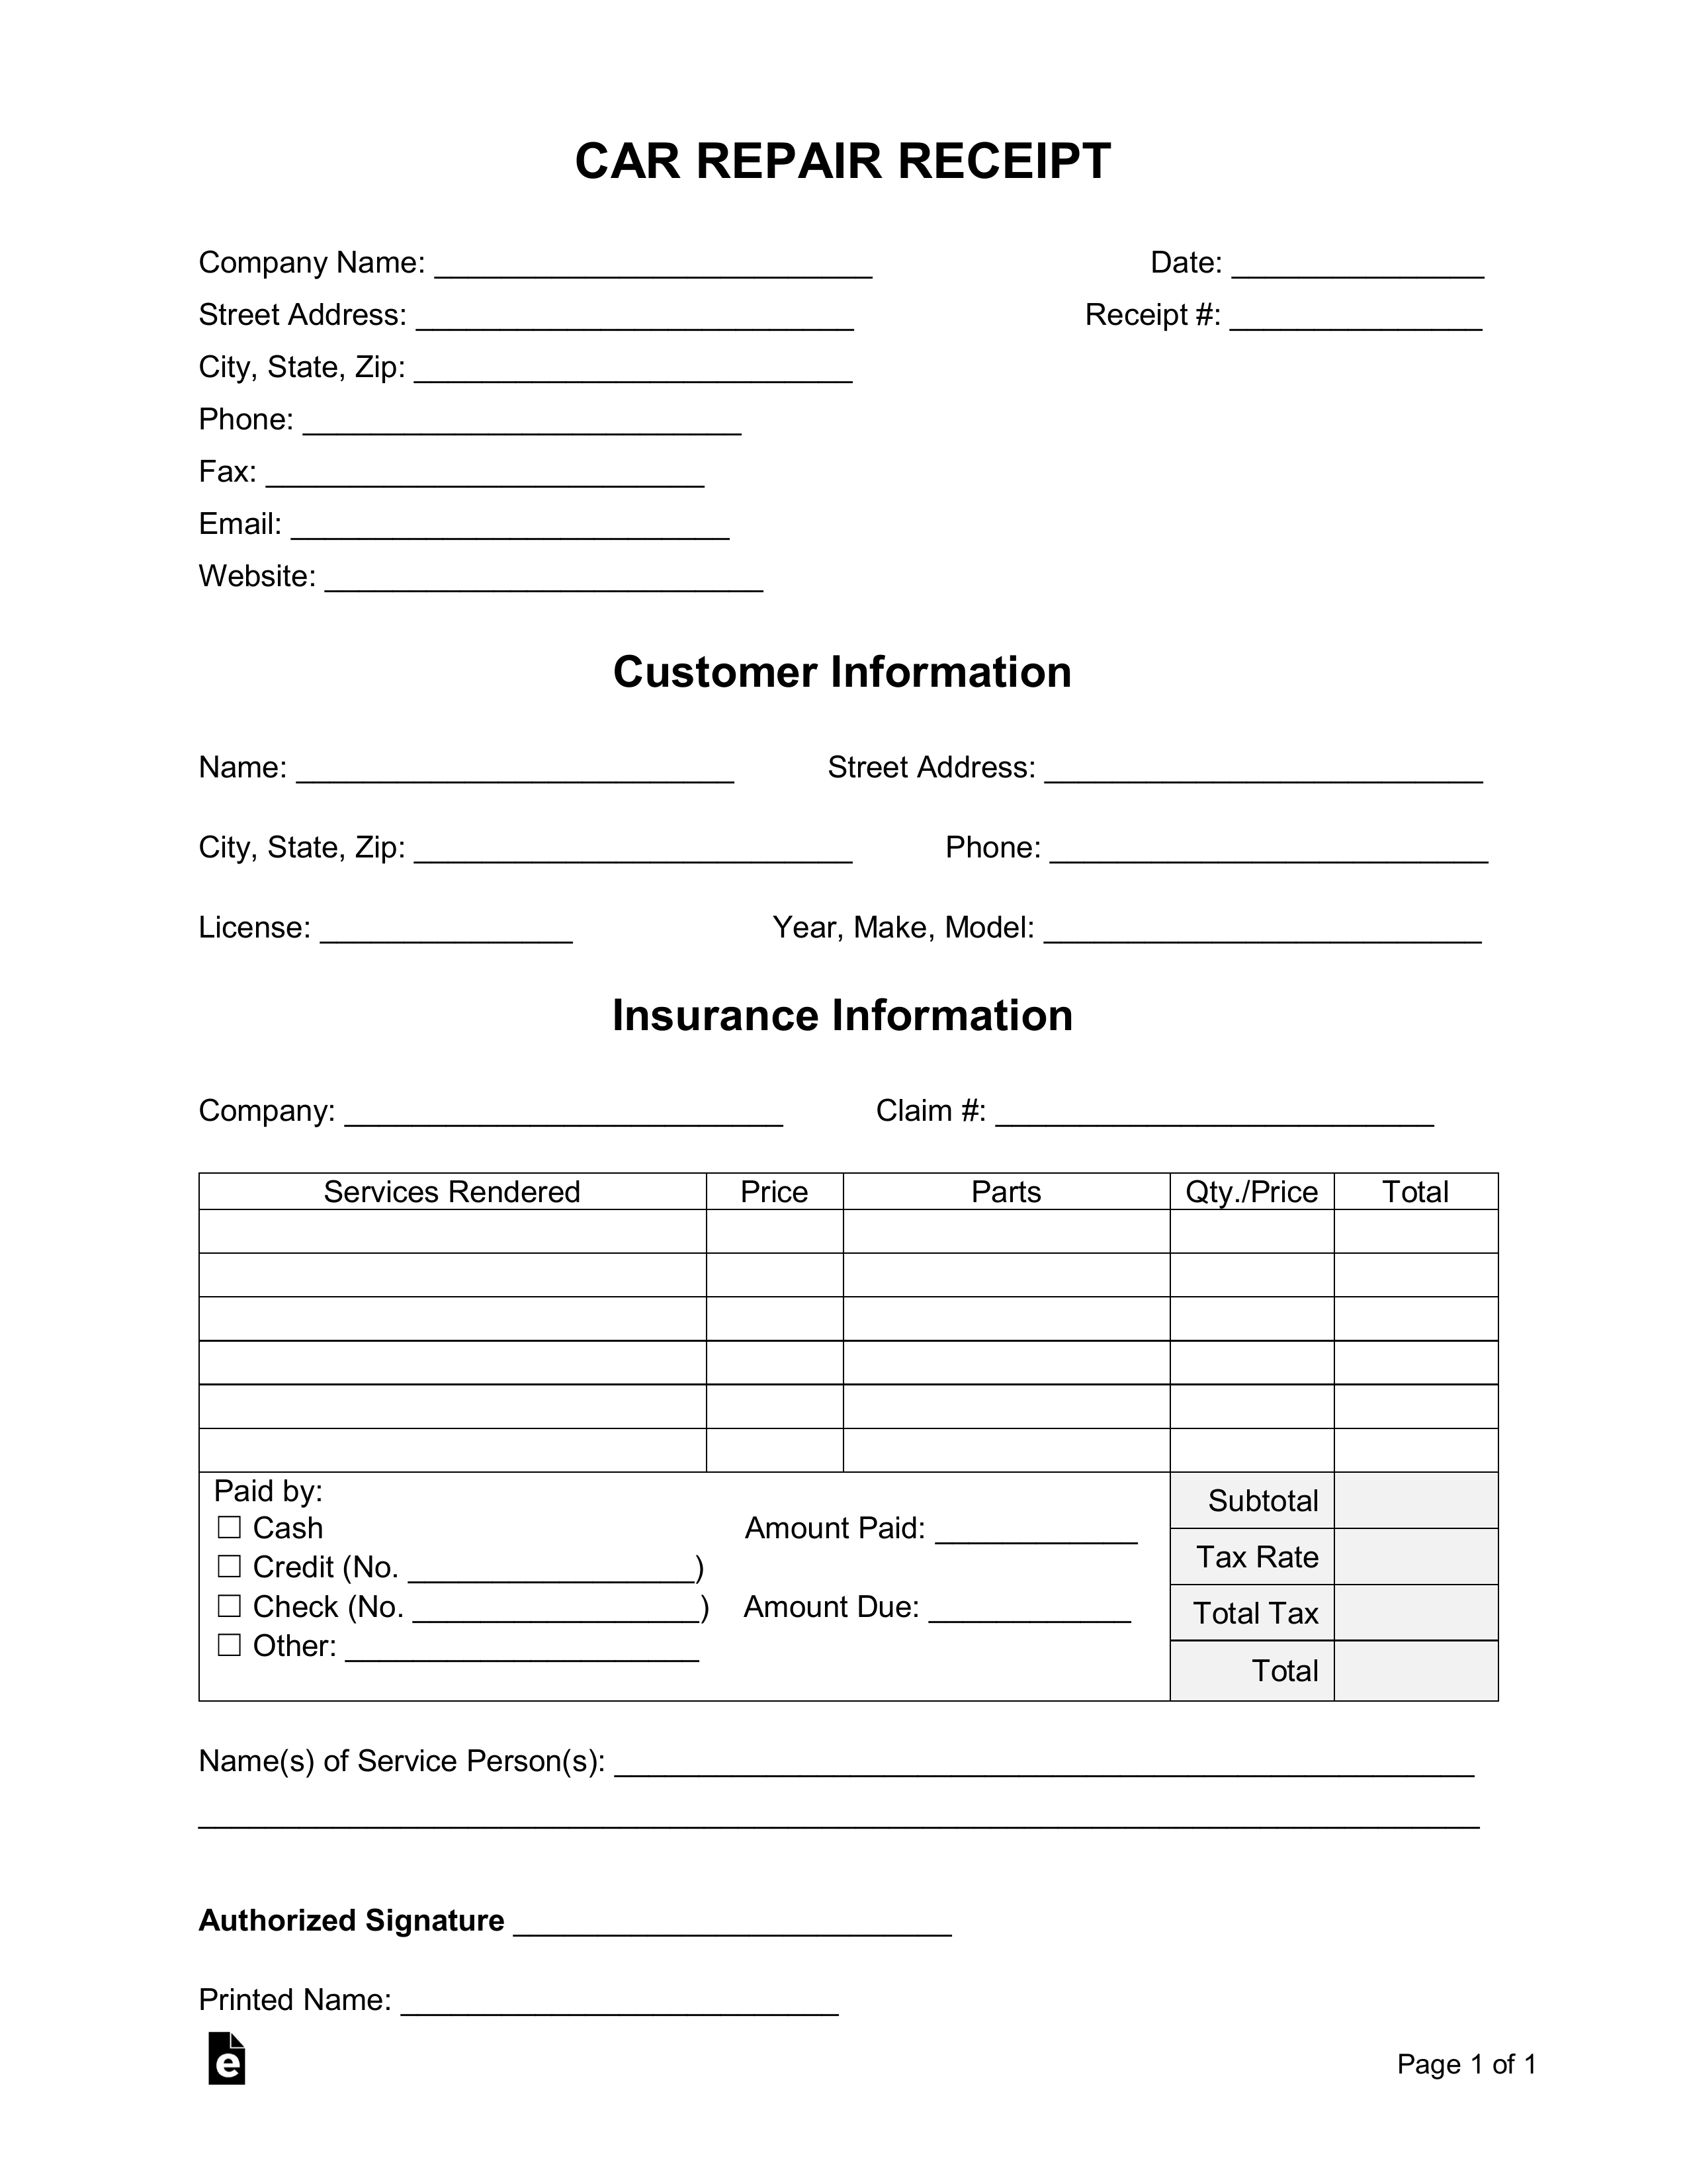 Car Repair Receipt Template Free